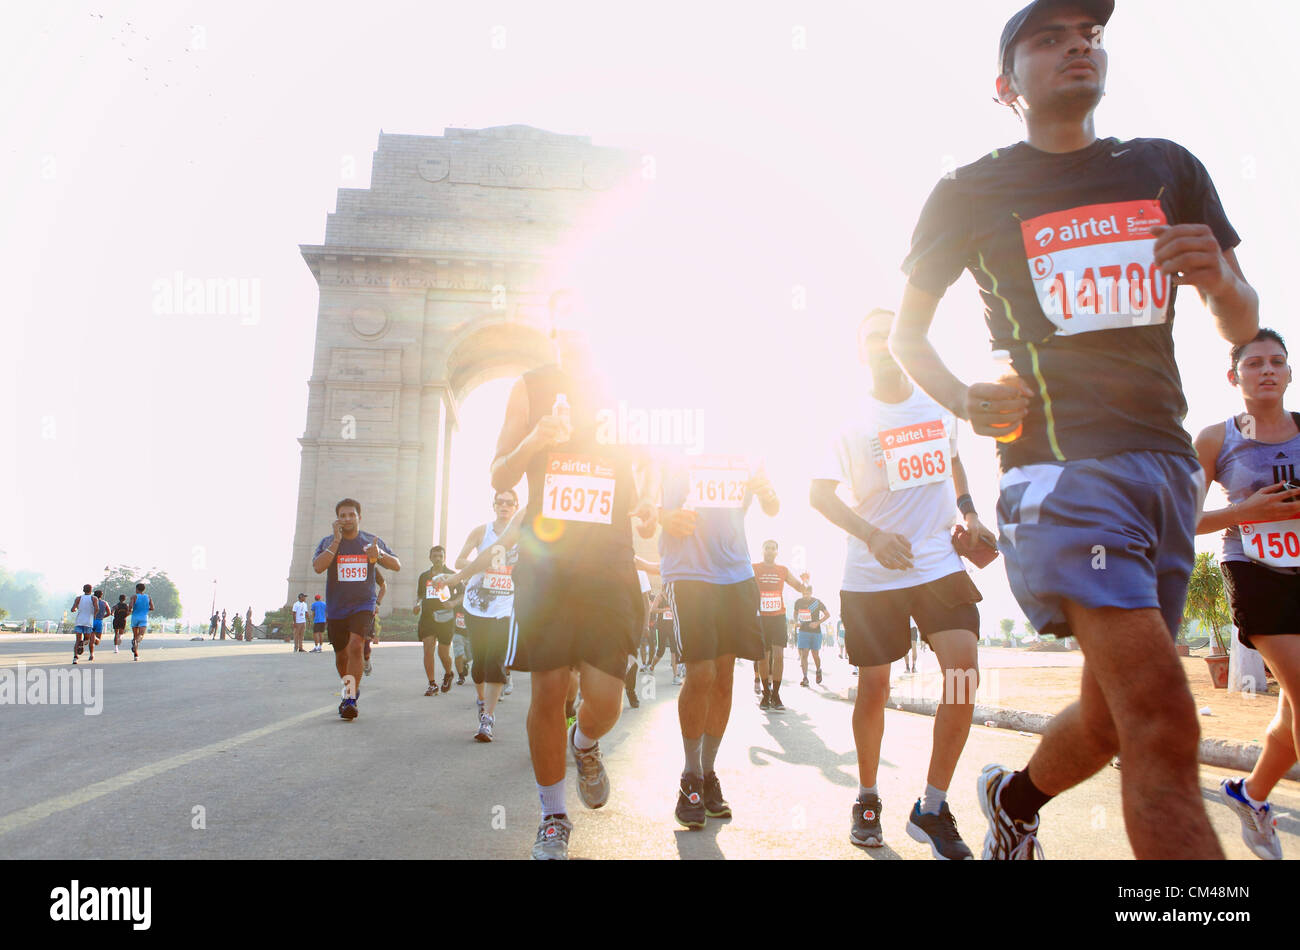 Sep. 30, 2012 - New Delhi, India - Delhi residents participate in the New Delhi Half Marathon as they run by the Stock Photo